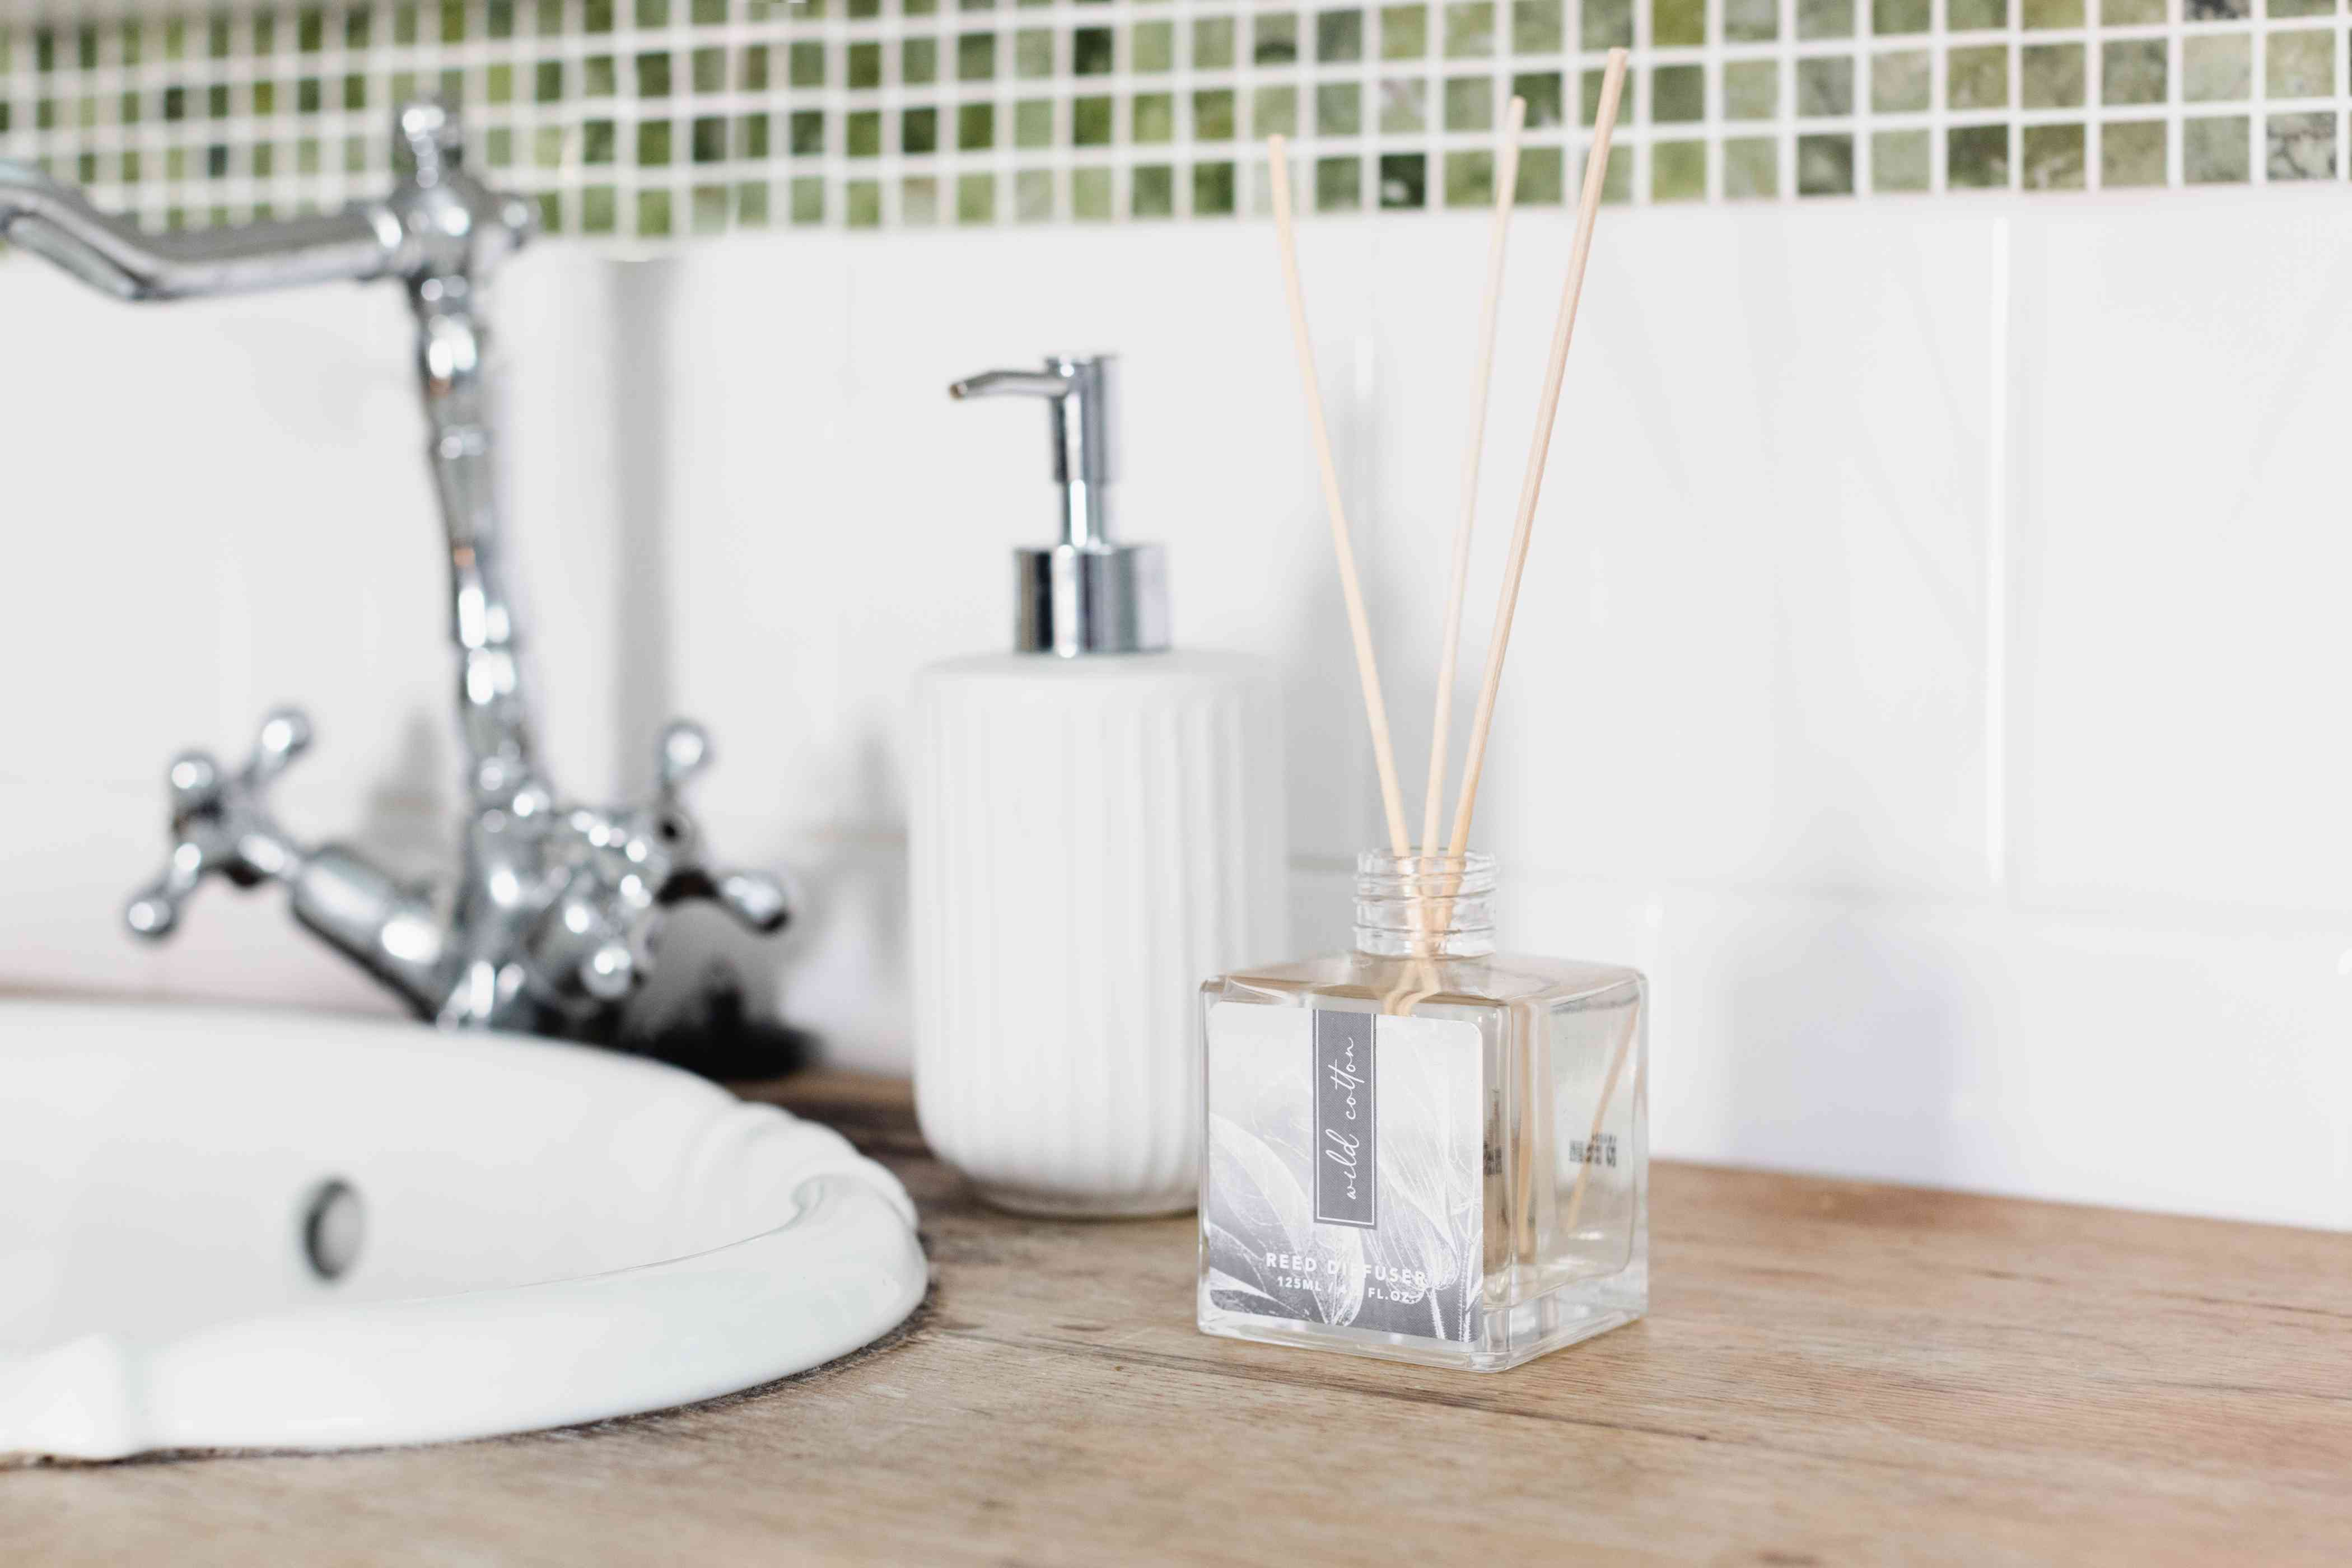 Air freshener with diffuser sticks on bathroom vanity surface